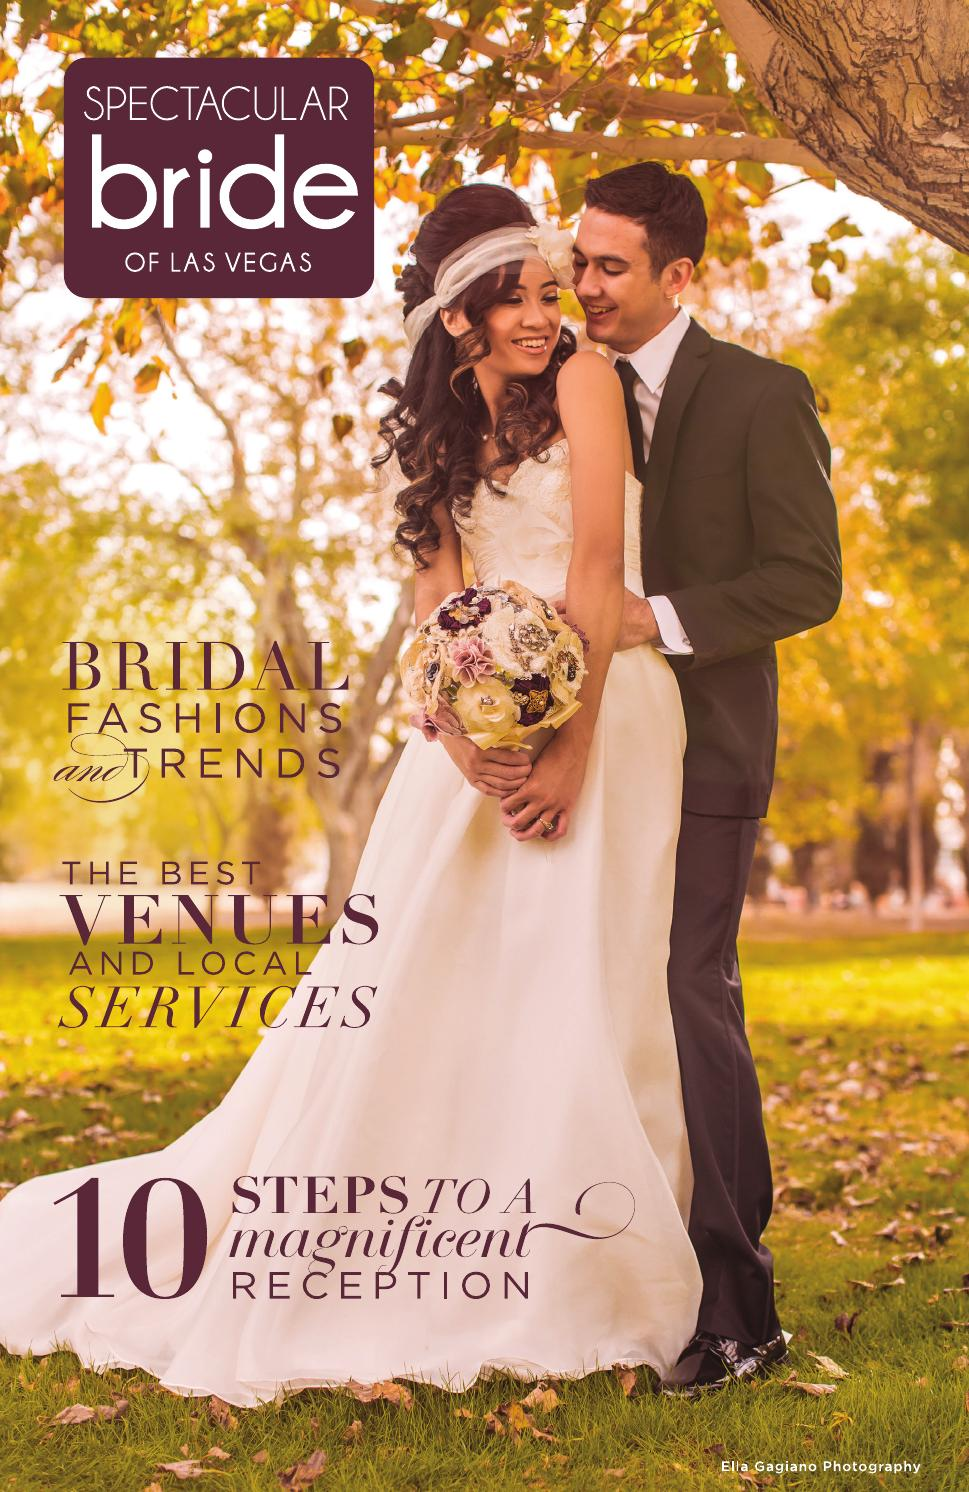 Spectacular Bride The Las Vegas Wedding Resource Vol 25 No 2 By Spectacular Weddings Of Las Vegas Issuu